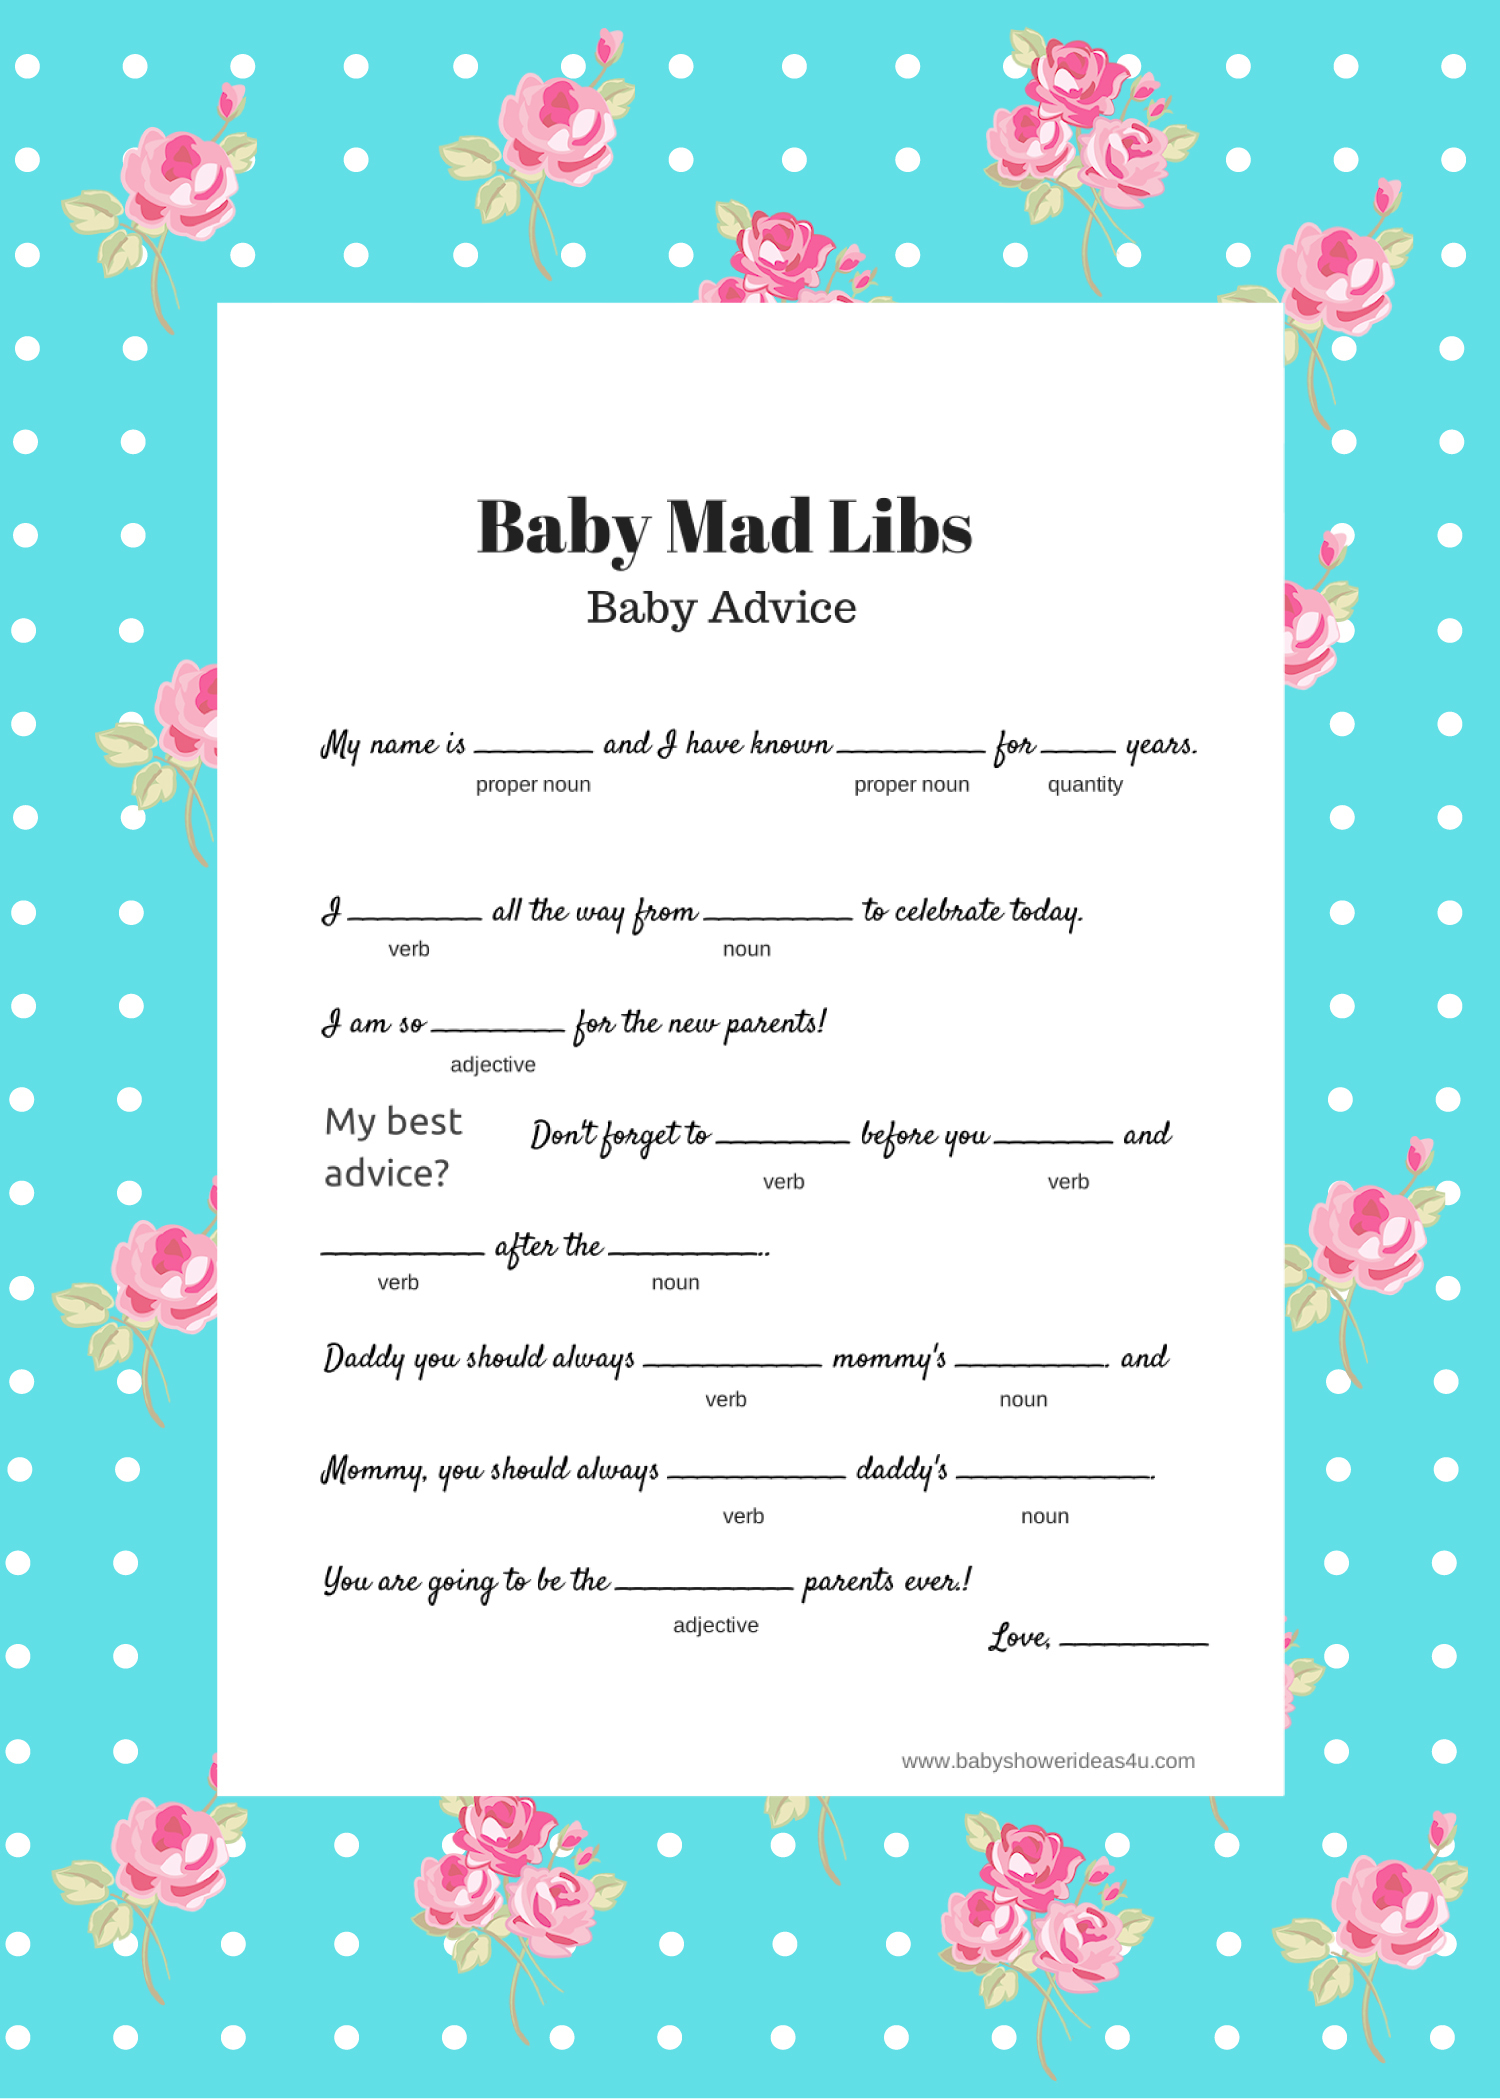 Baby Shower Food Ideas: Baby Shower Games Ideas Pdf - Free Printable Baby Shower Games In Spanish